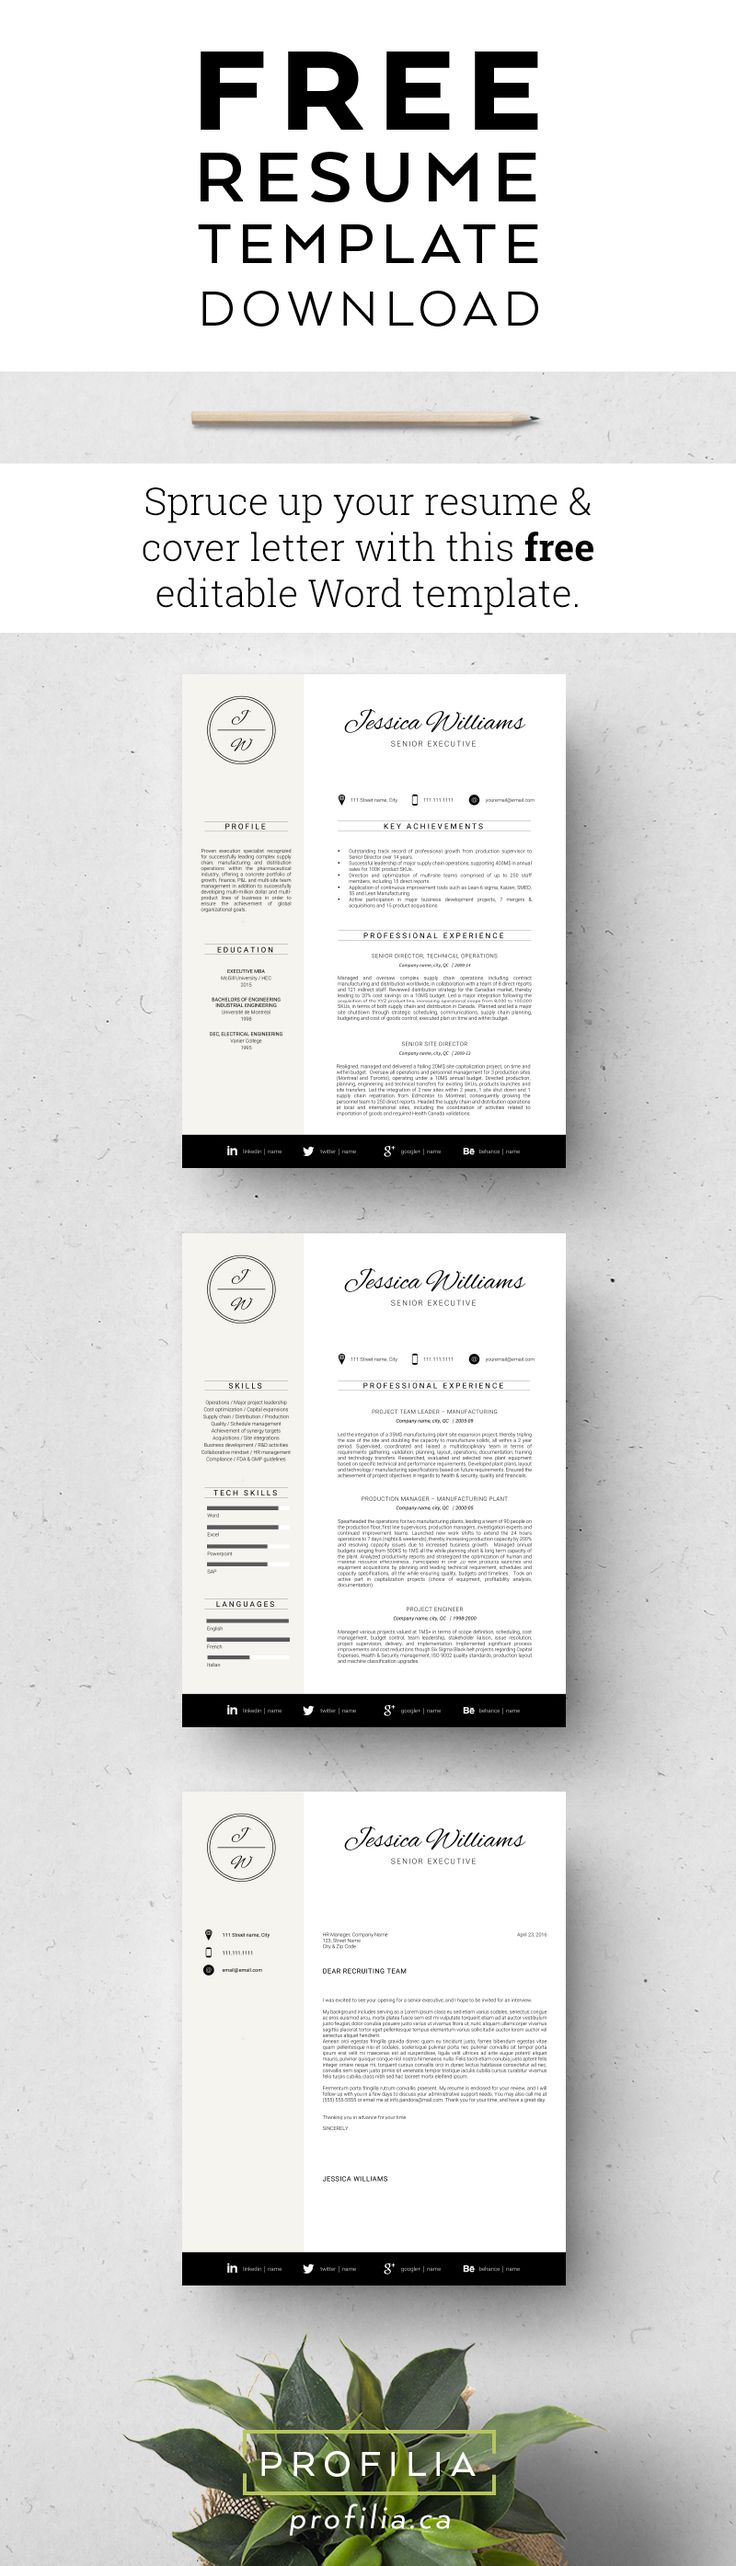 free resume template refresh your job search with this free resume cover